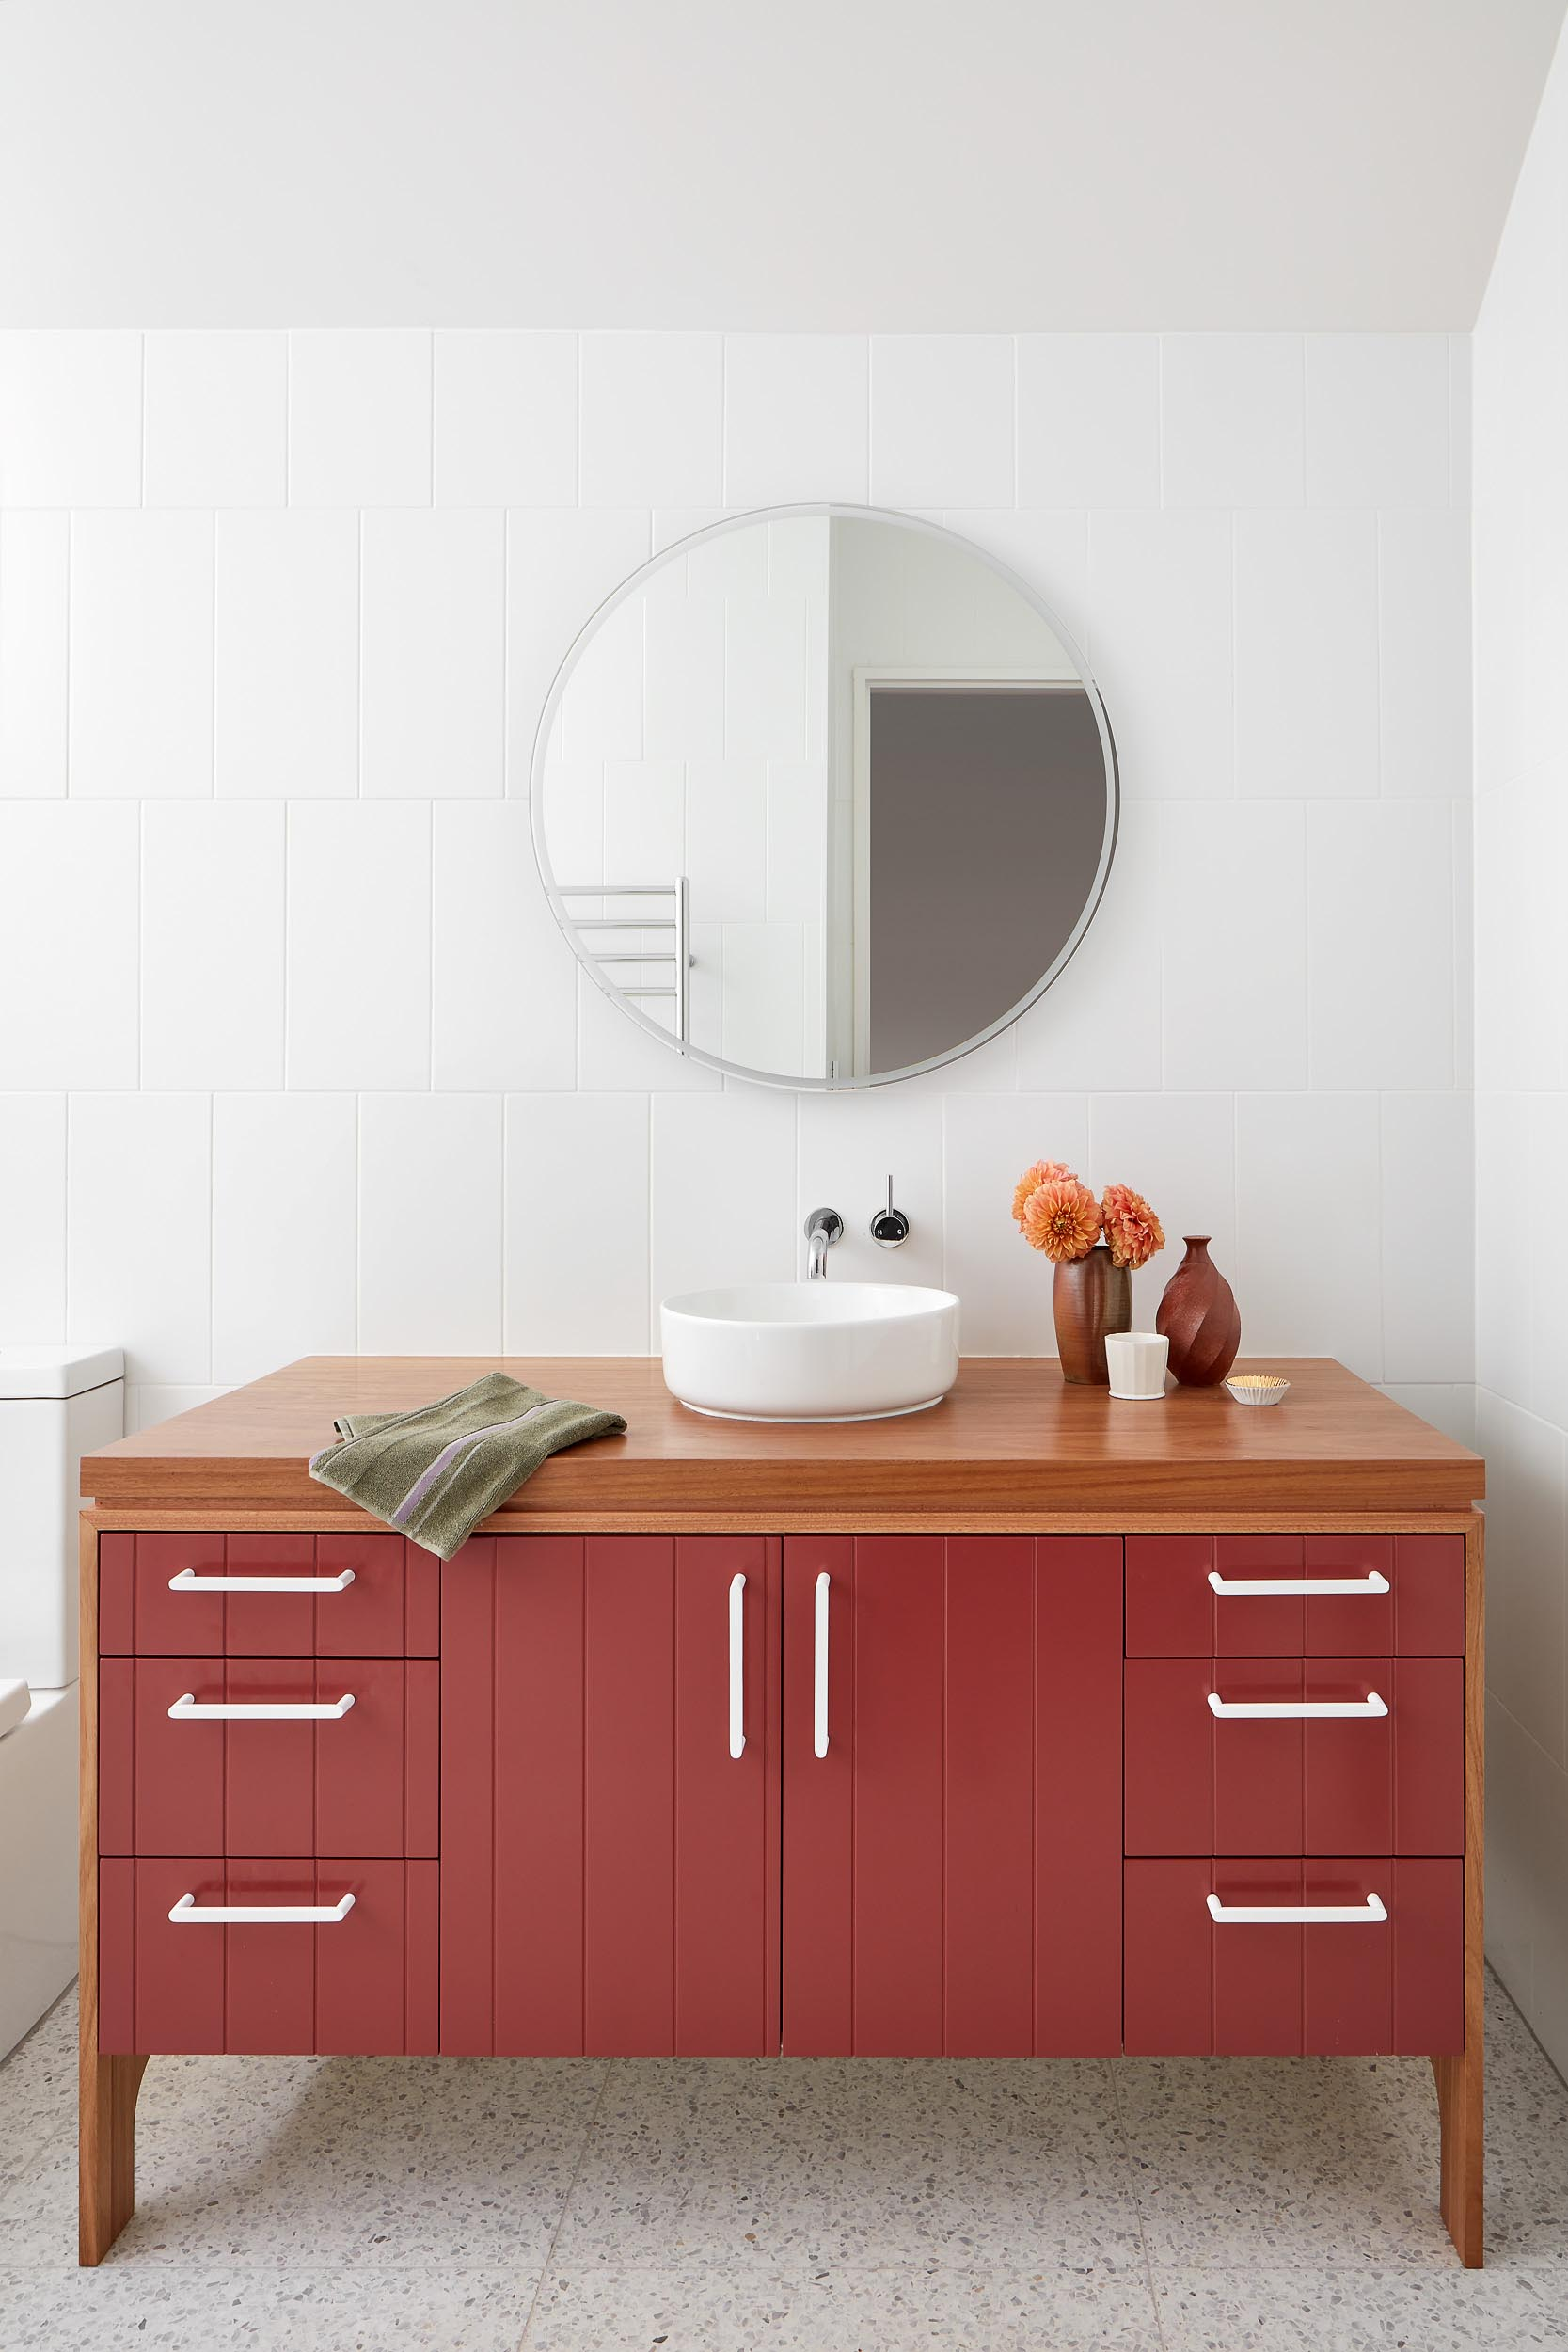 In this modern bathroom, the color for the room comes from the vanity that sits below a round mirror.